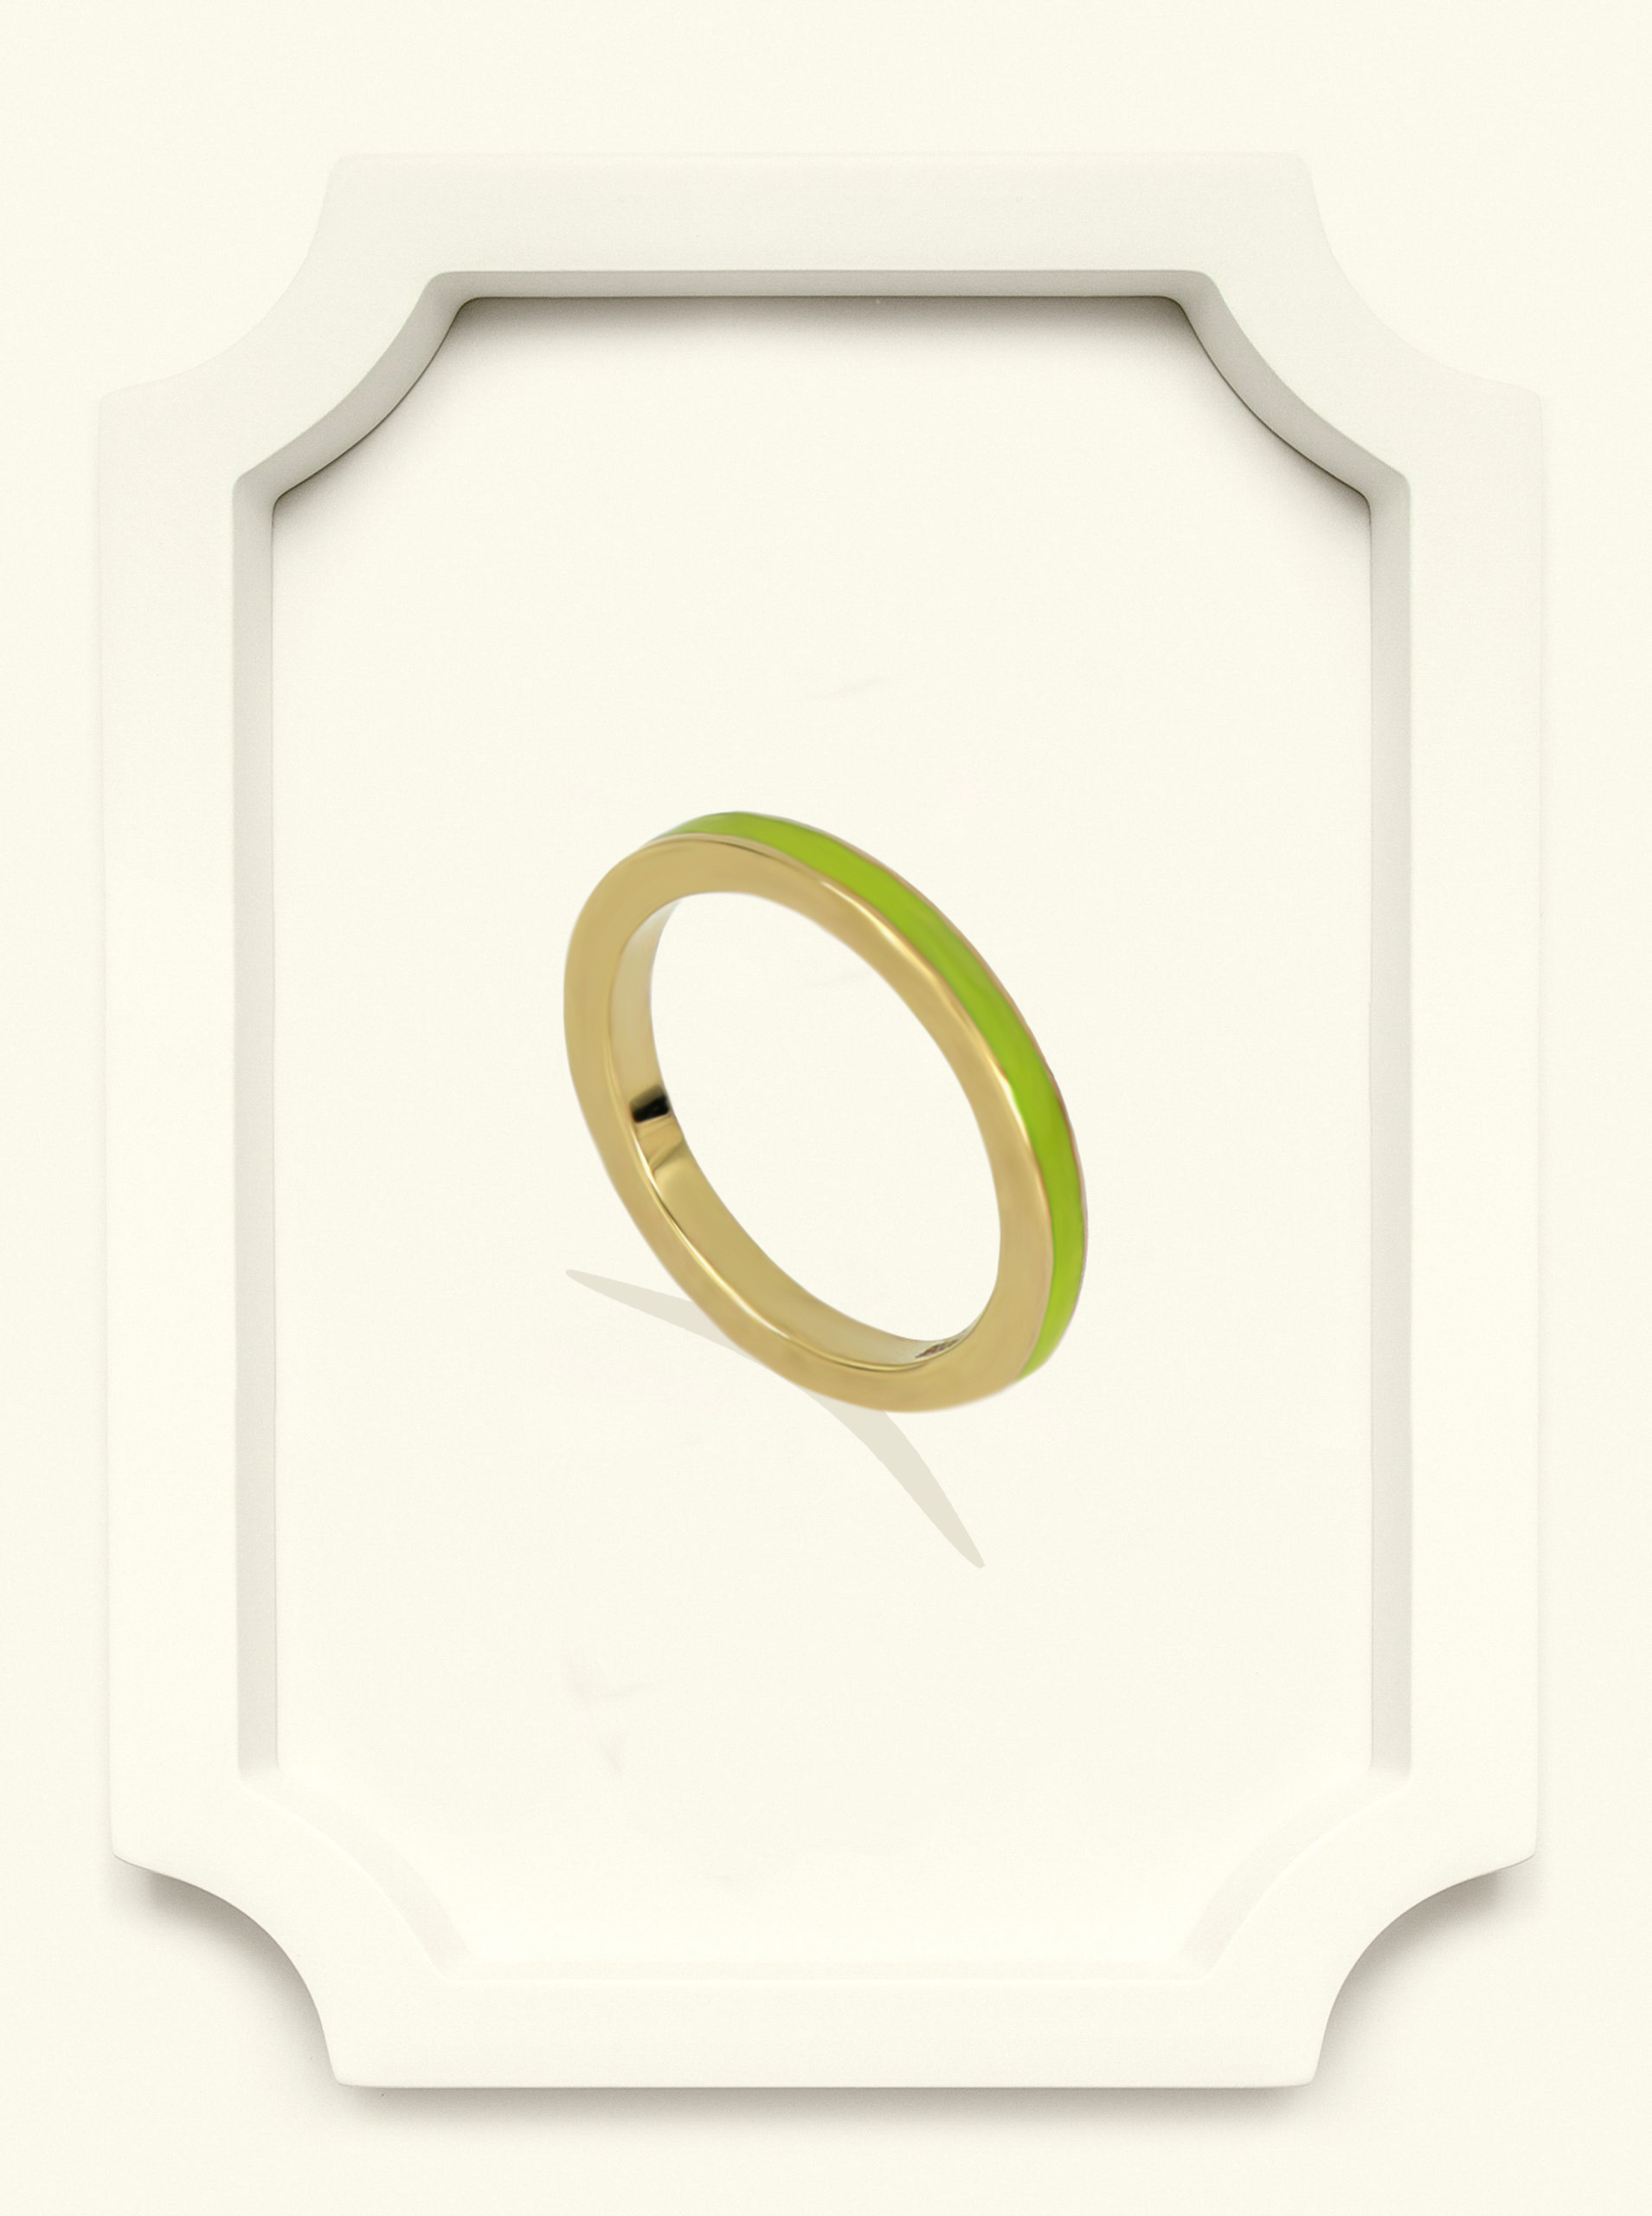 Yg band with light green